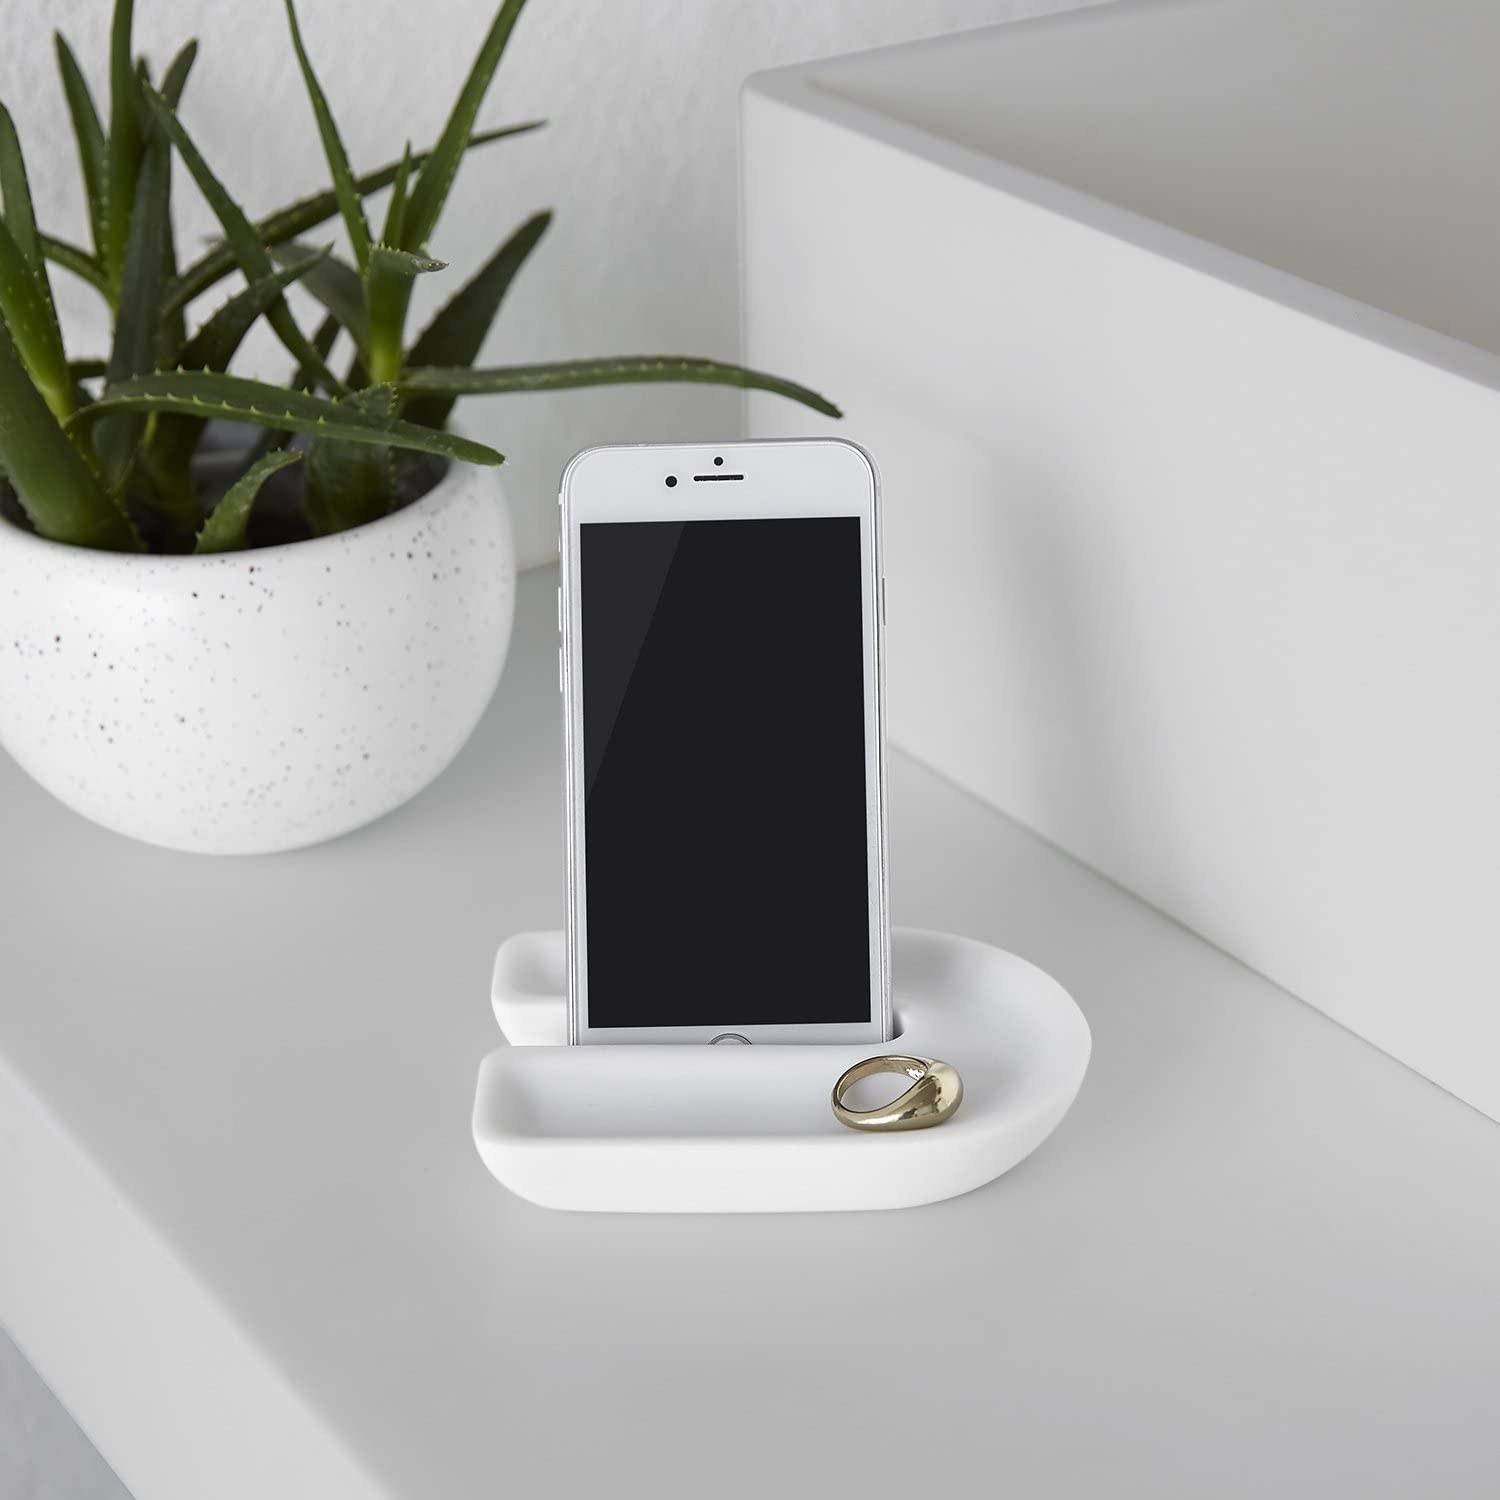 The phone holder on a counter with a phone and a gold ring on it